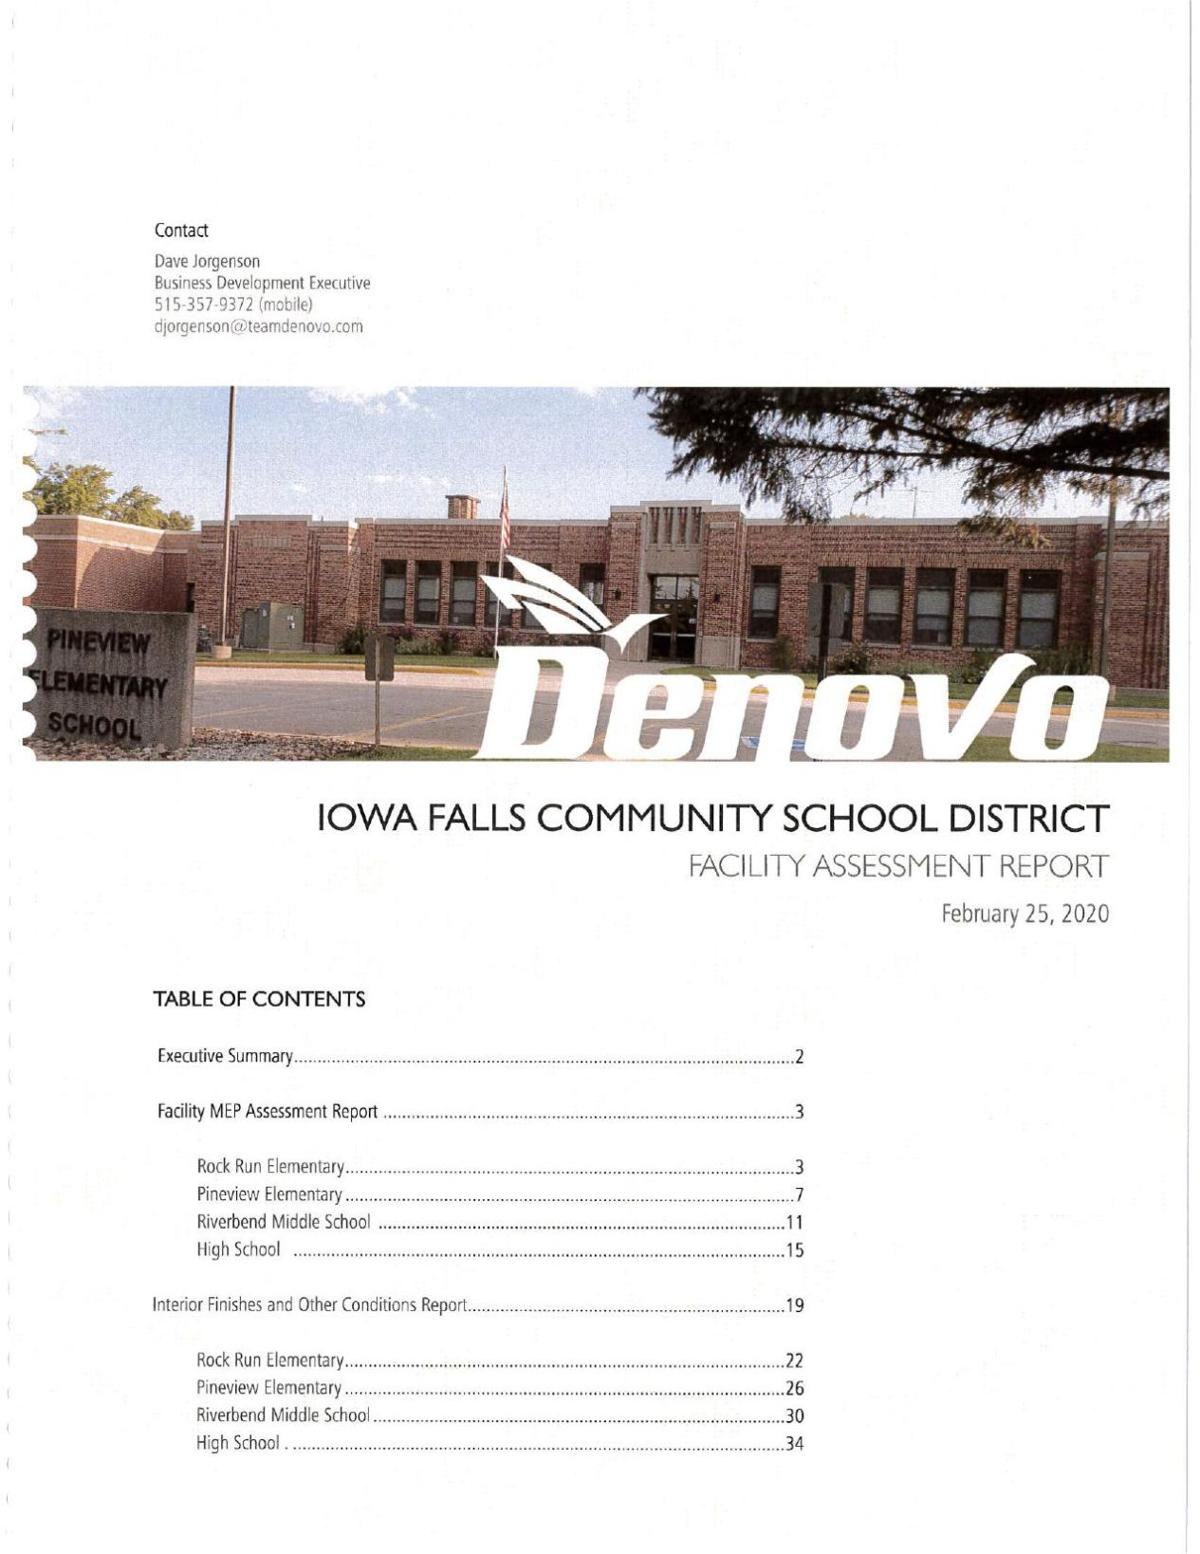 Iowa Falls Schools Facilities Assessment Report